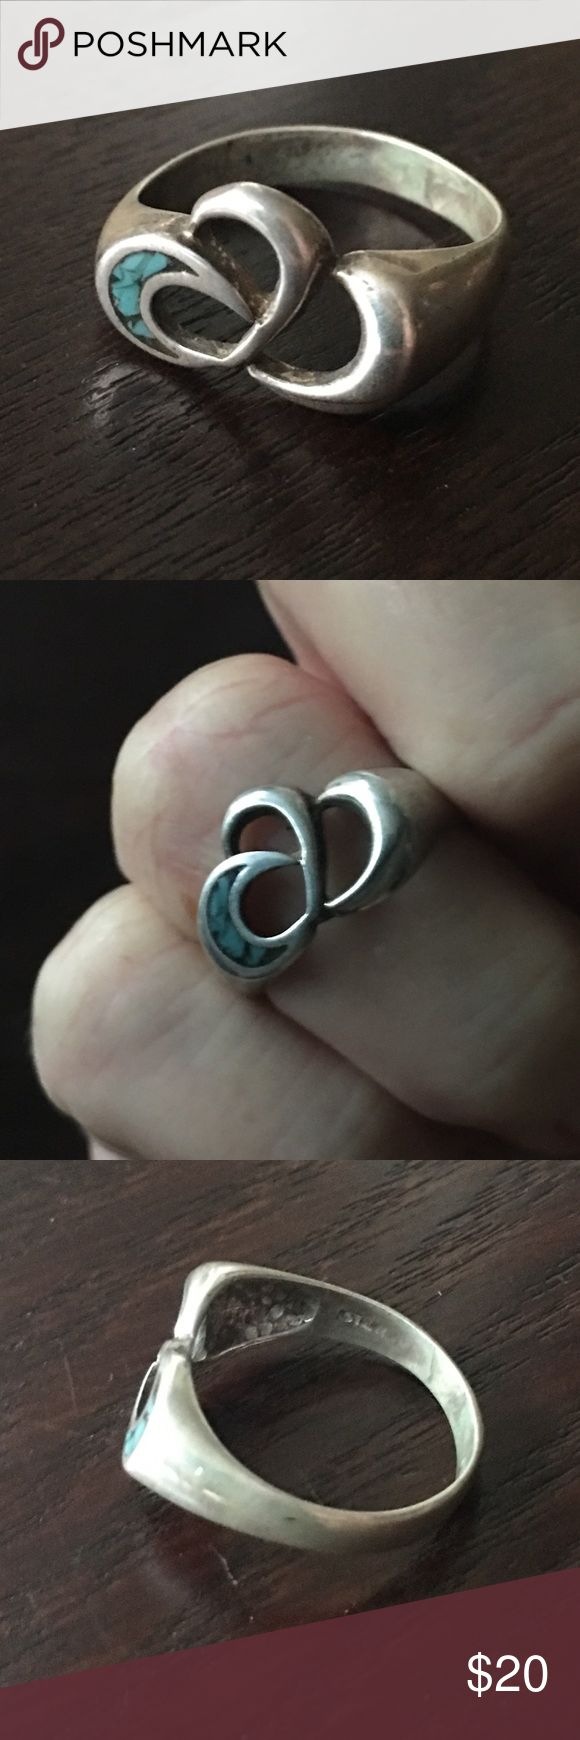 """Sterling silver Turquoise crescent moon ring Sterling silver crescent moon ring. Vintage elegant design, some patina present. Pretty chipped Inlay turquoise inside moon. Marked """"Ster"""" for Sterling inside the band. Jewelry Rings"""